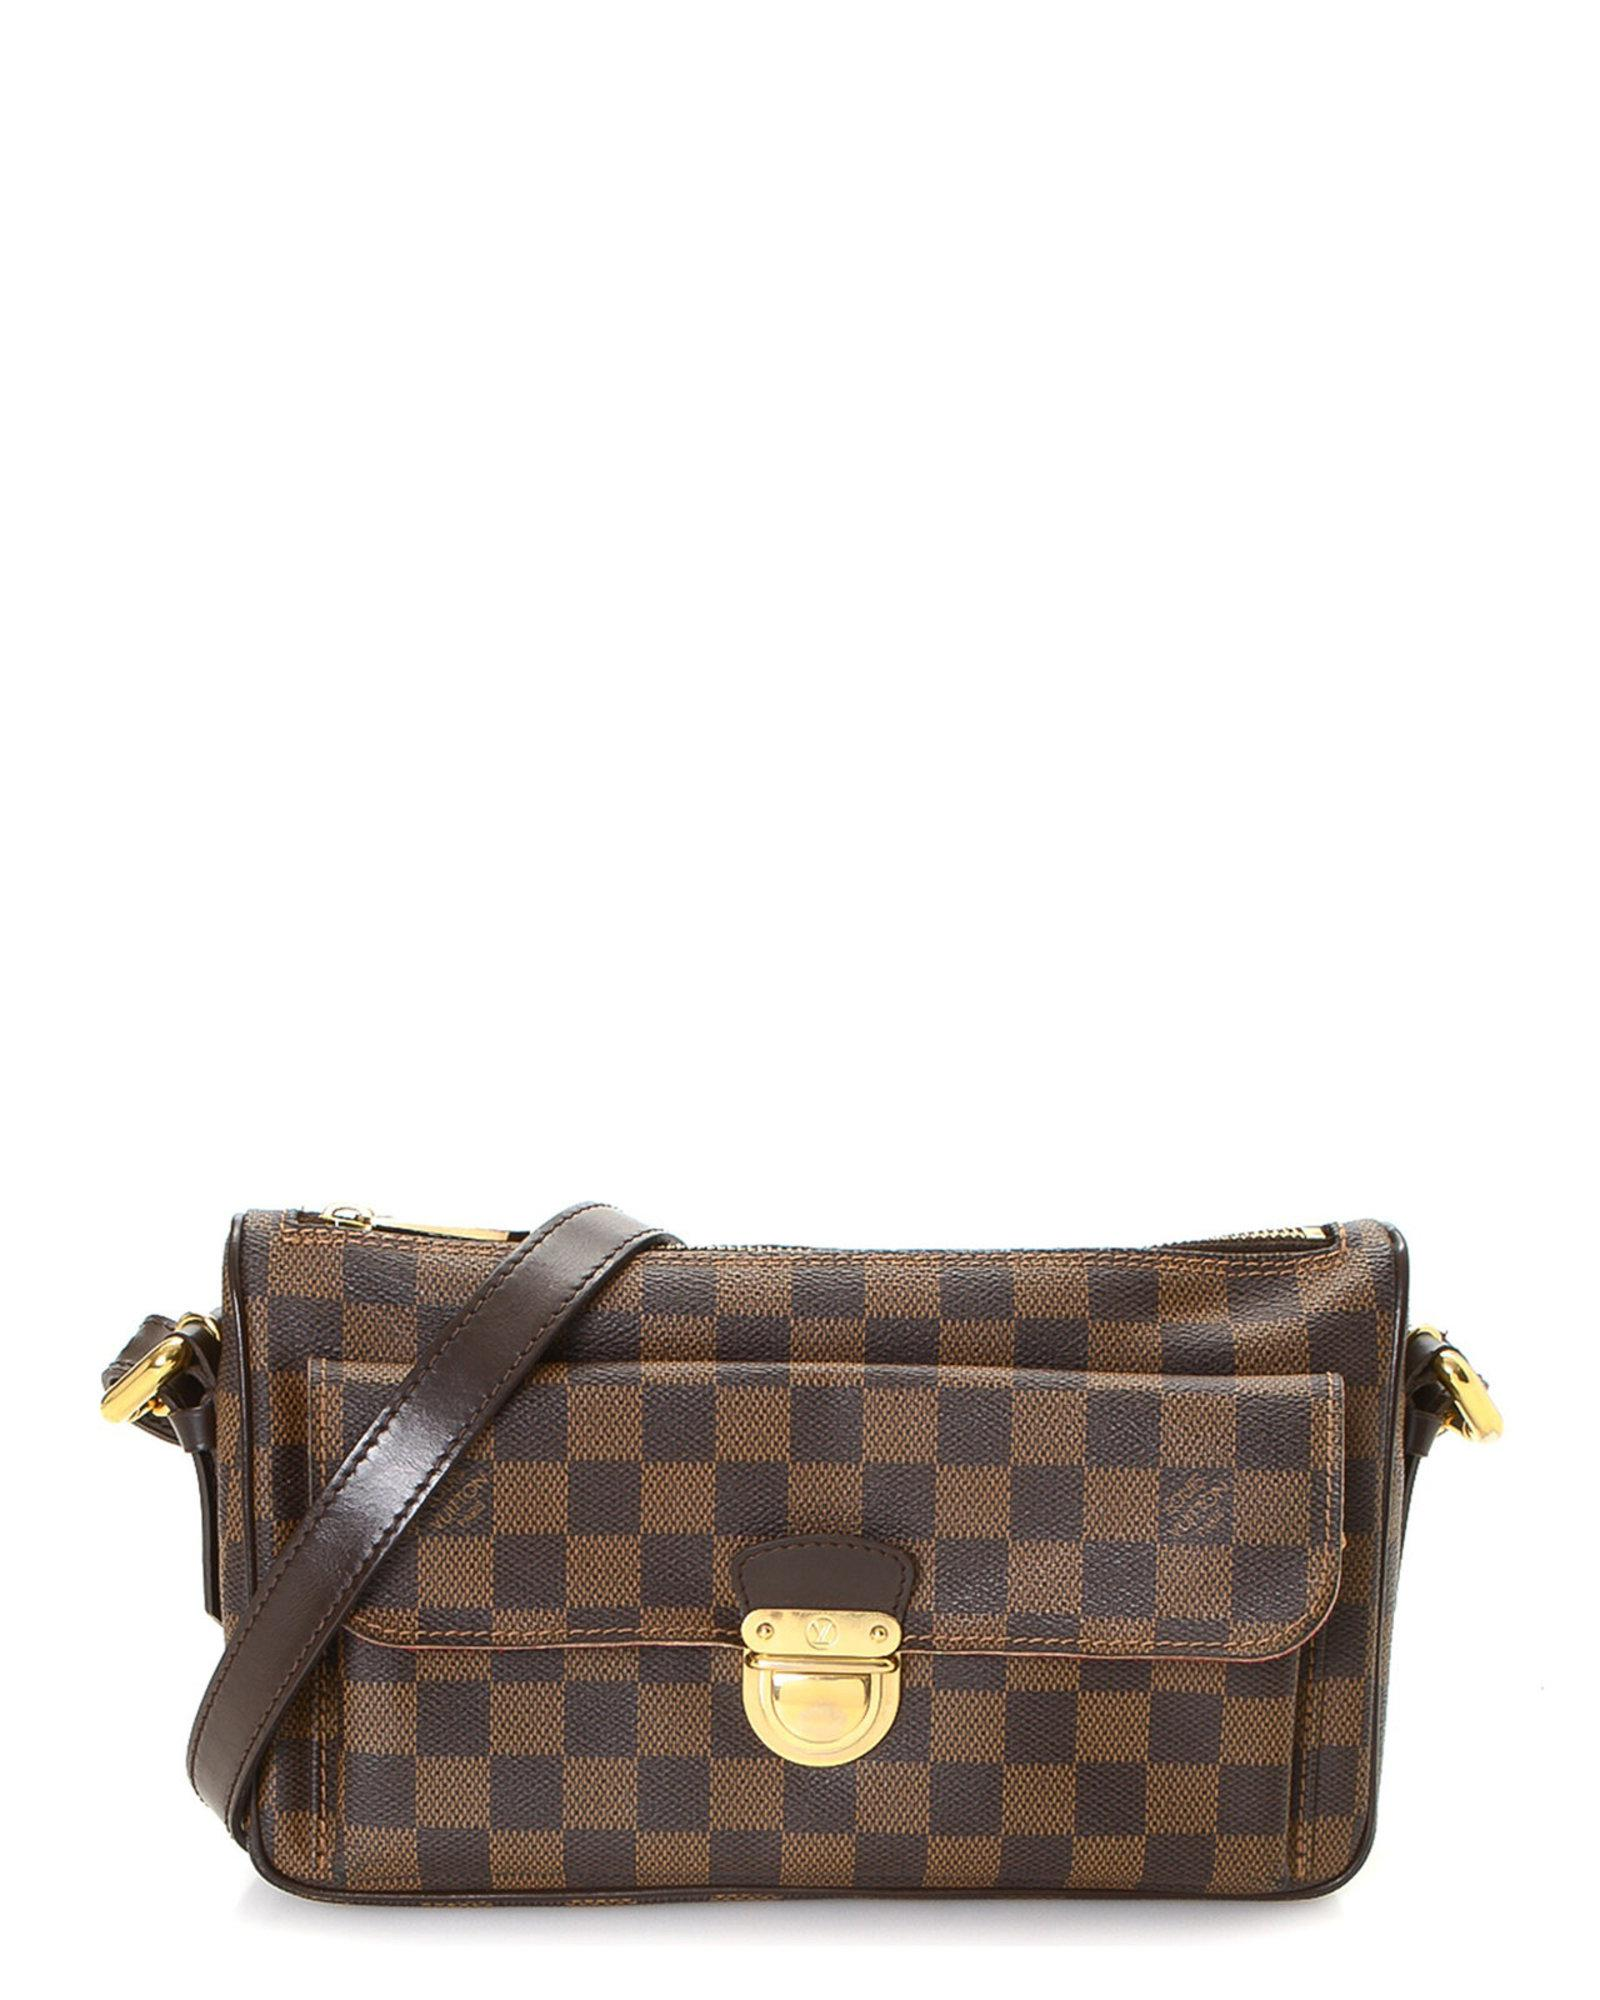 fee5c93199e Lyst - Louis Vuitton Ravello Gm Shoulder Bag - Vintage in Brown